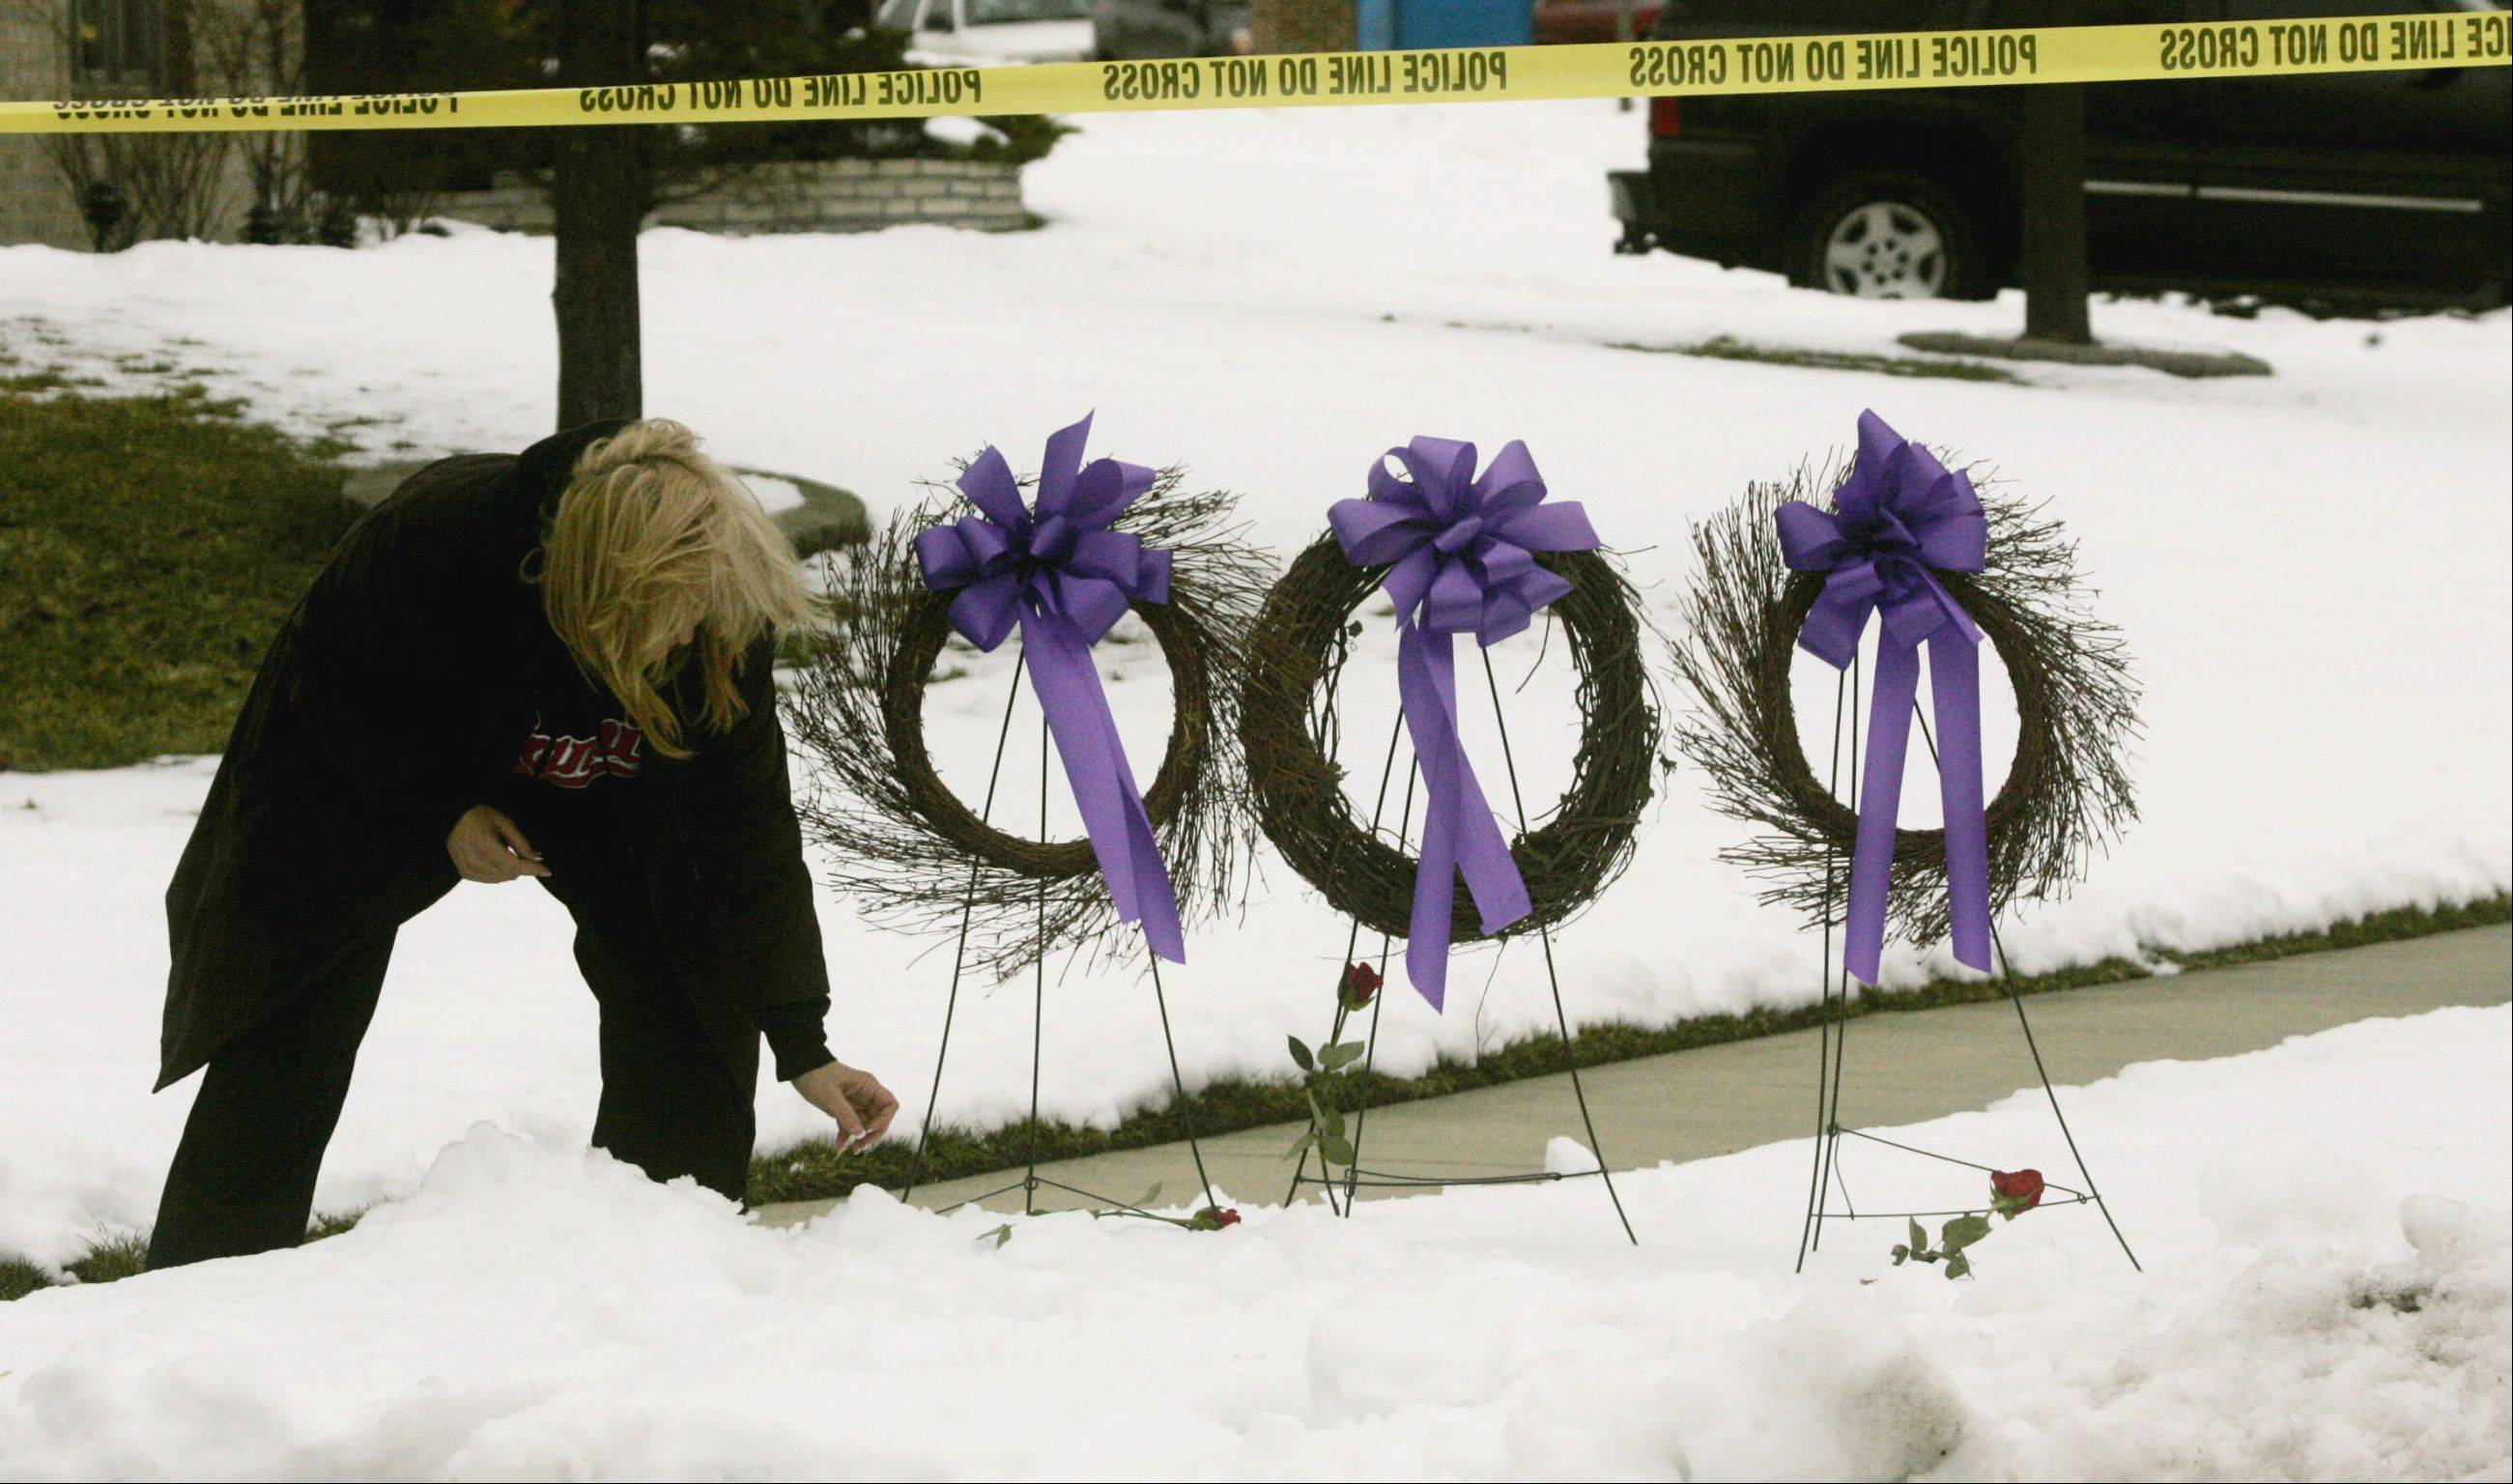 herald file photoA neighbor set up a memorial for the victims of a triple homicide in a Darien home.